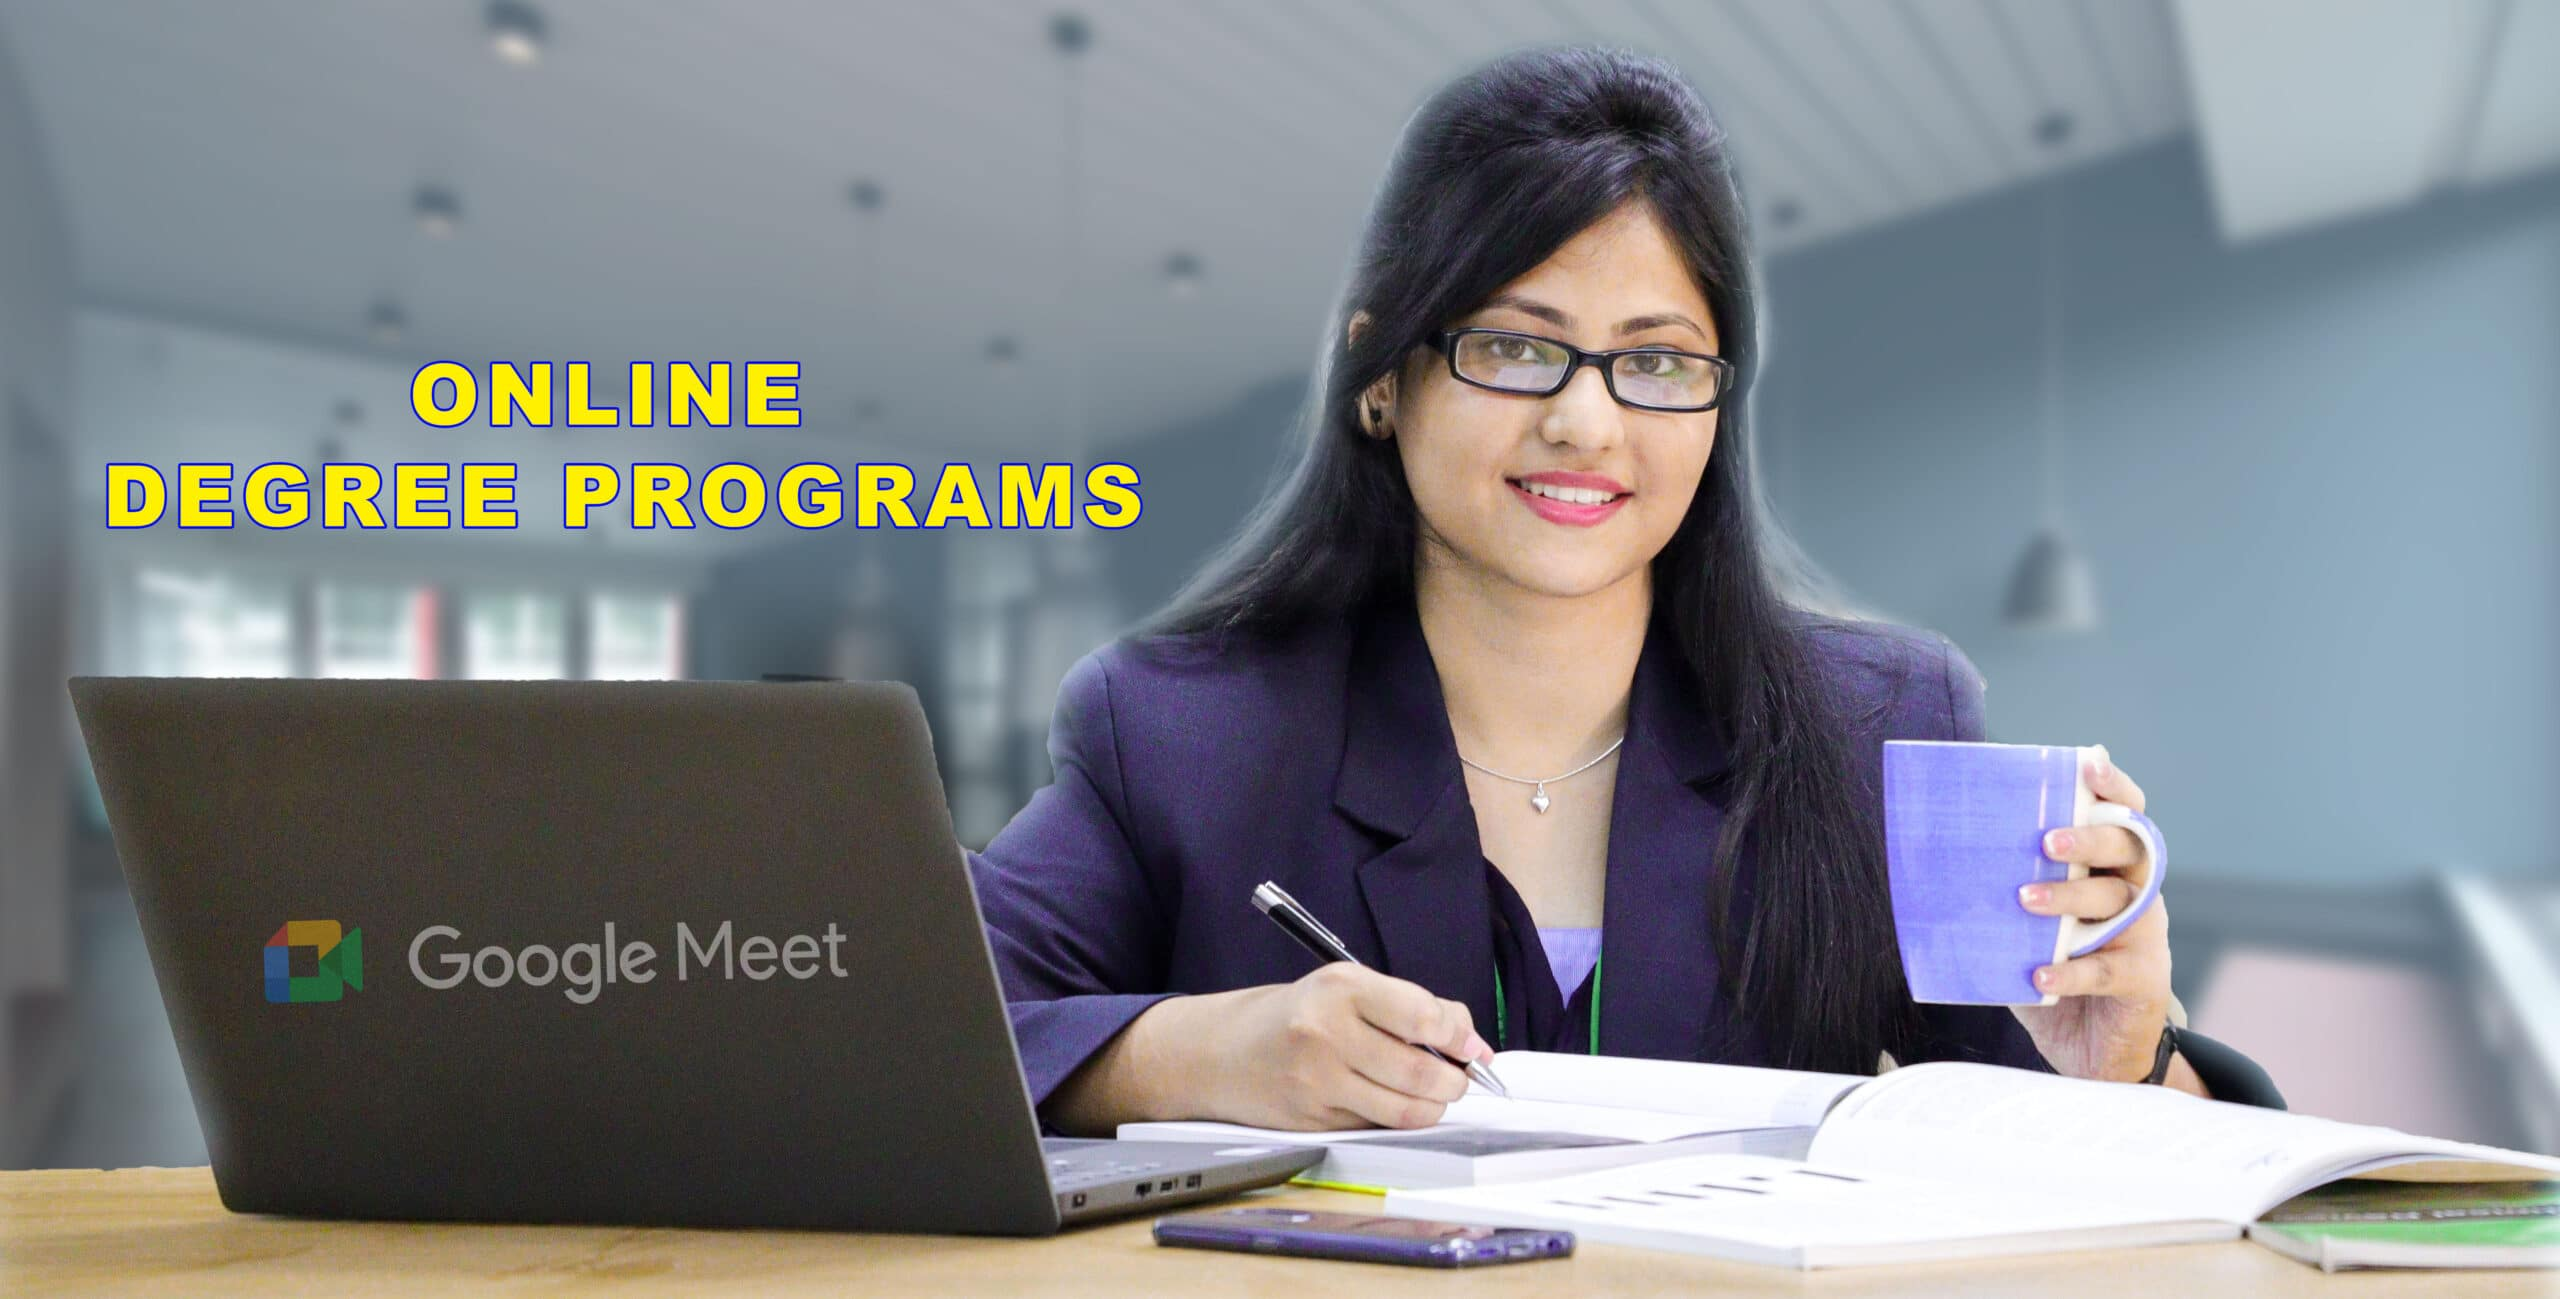 PROS AND CONS OF ONLINE DEGREE PROGRAMS